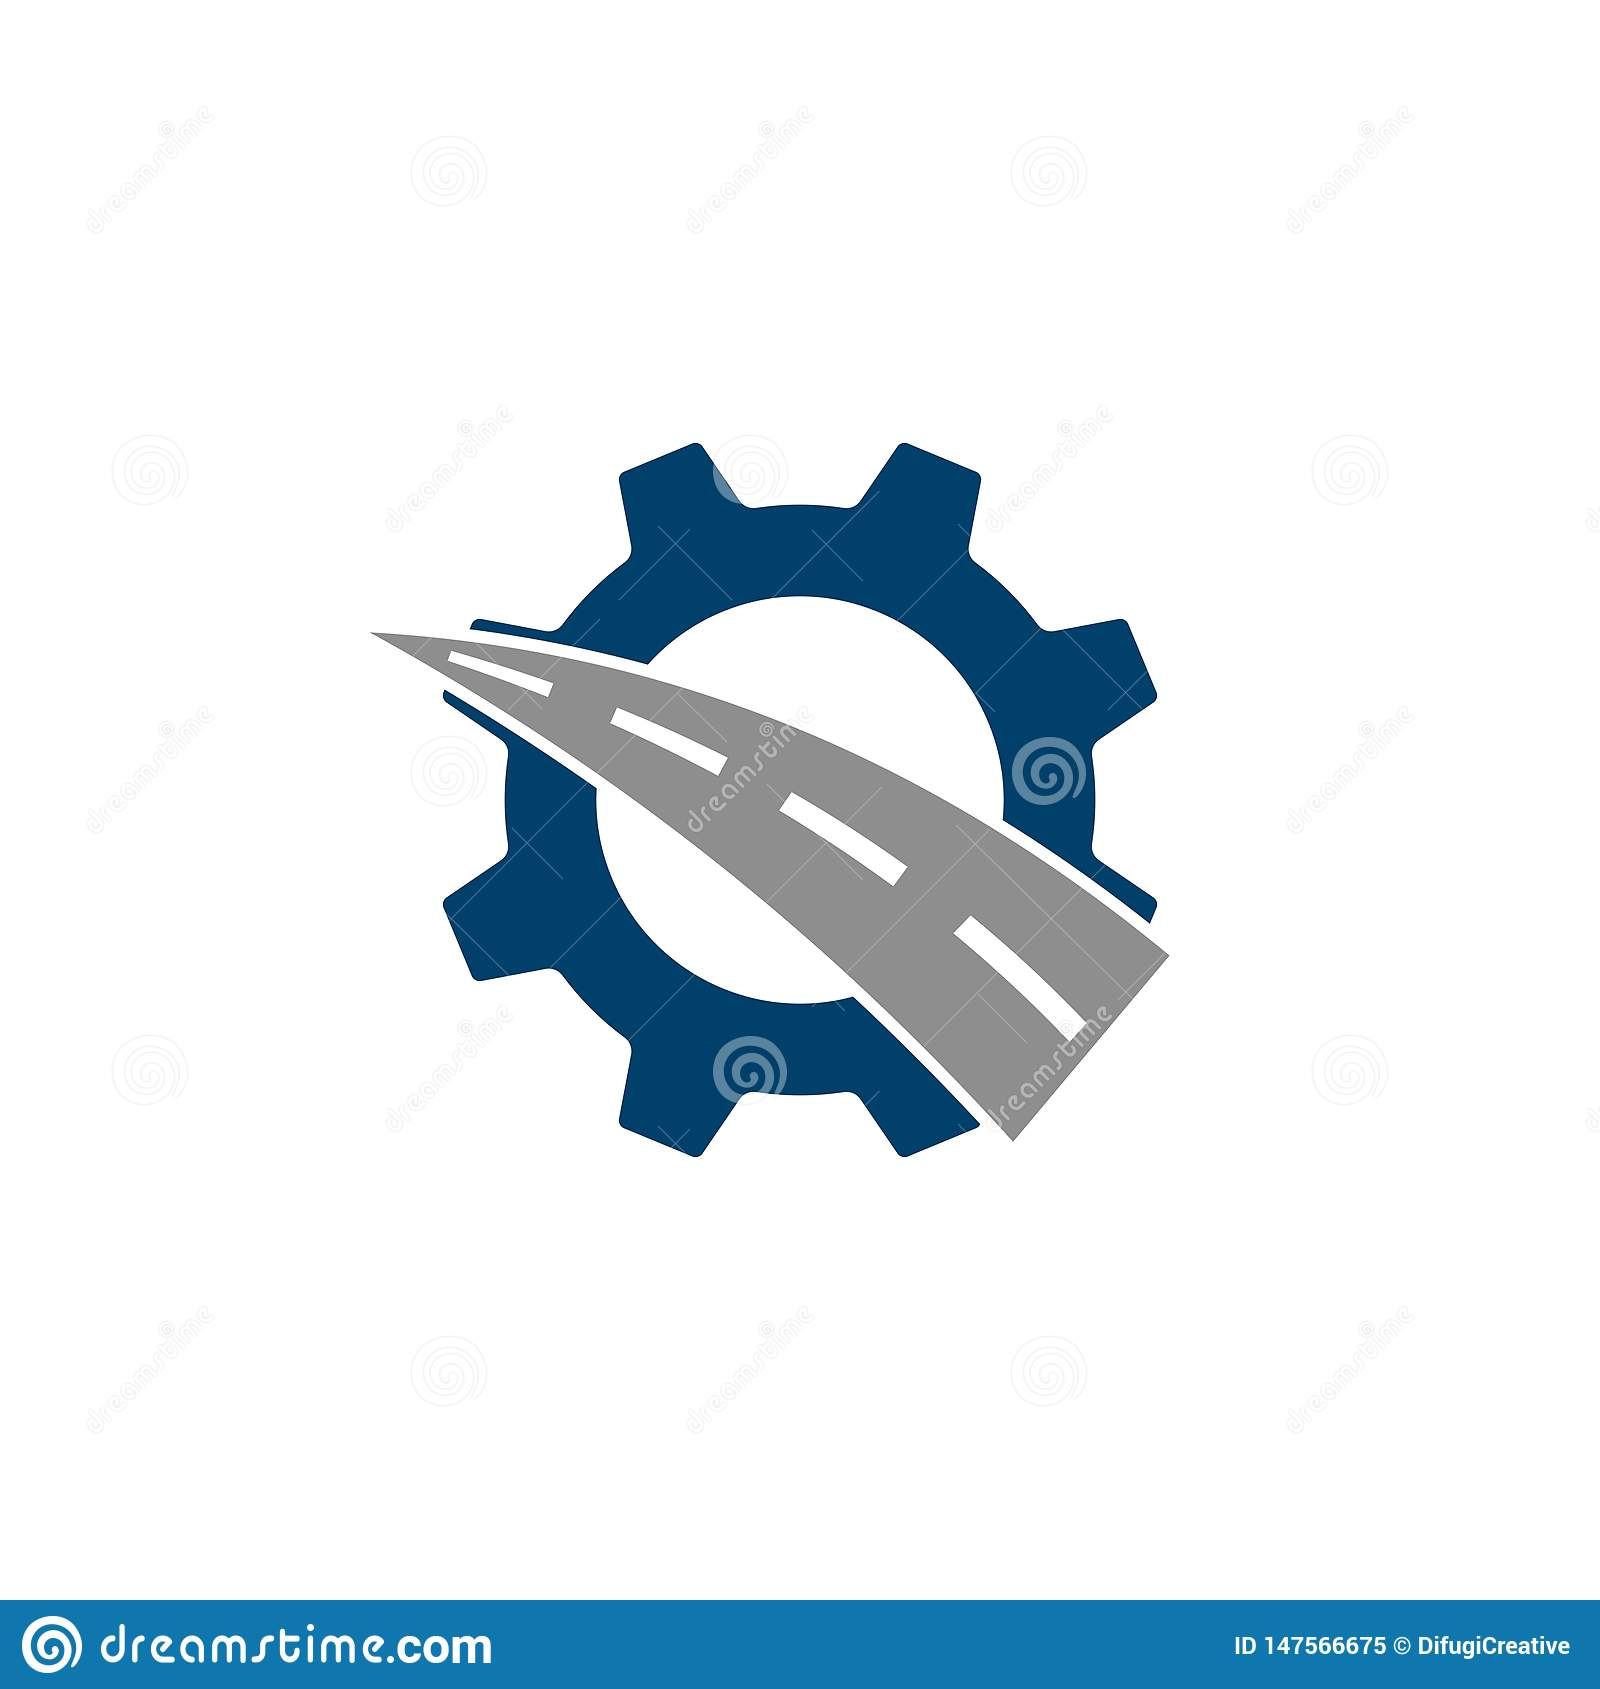 Gear and road combination logo.